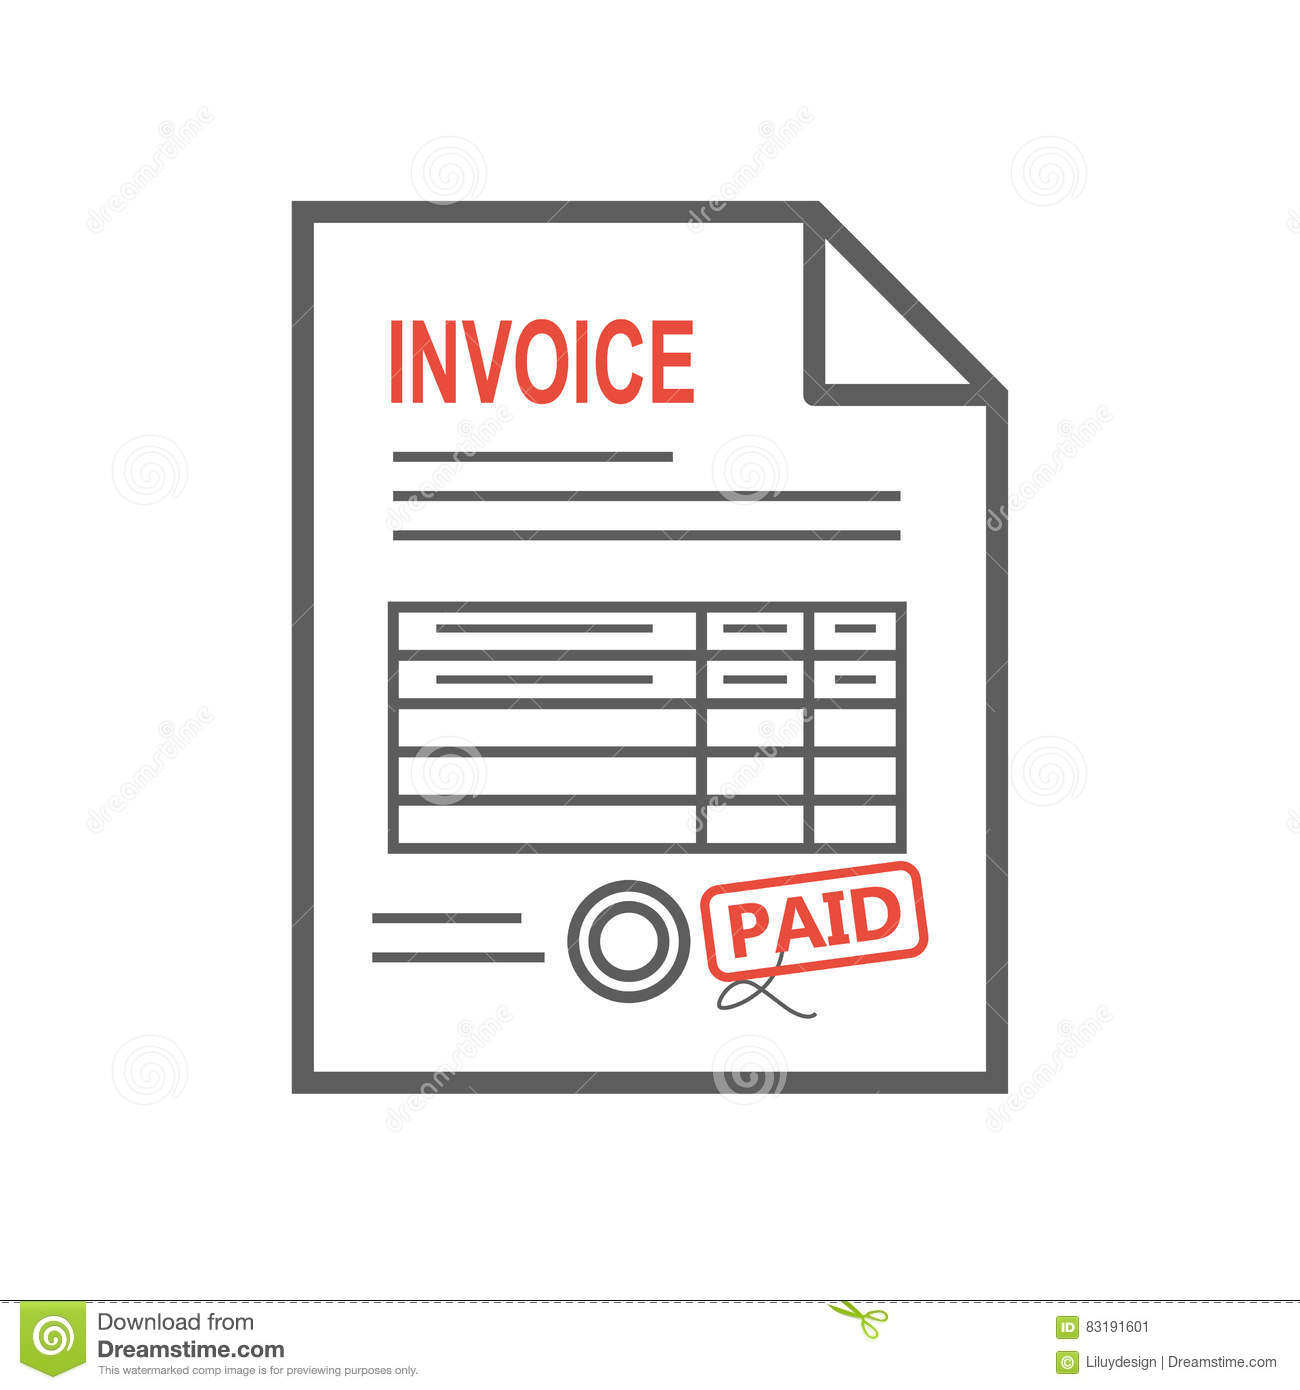 Invoice icon in the flat style, isolated from the background. Thin line